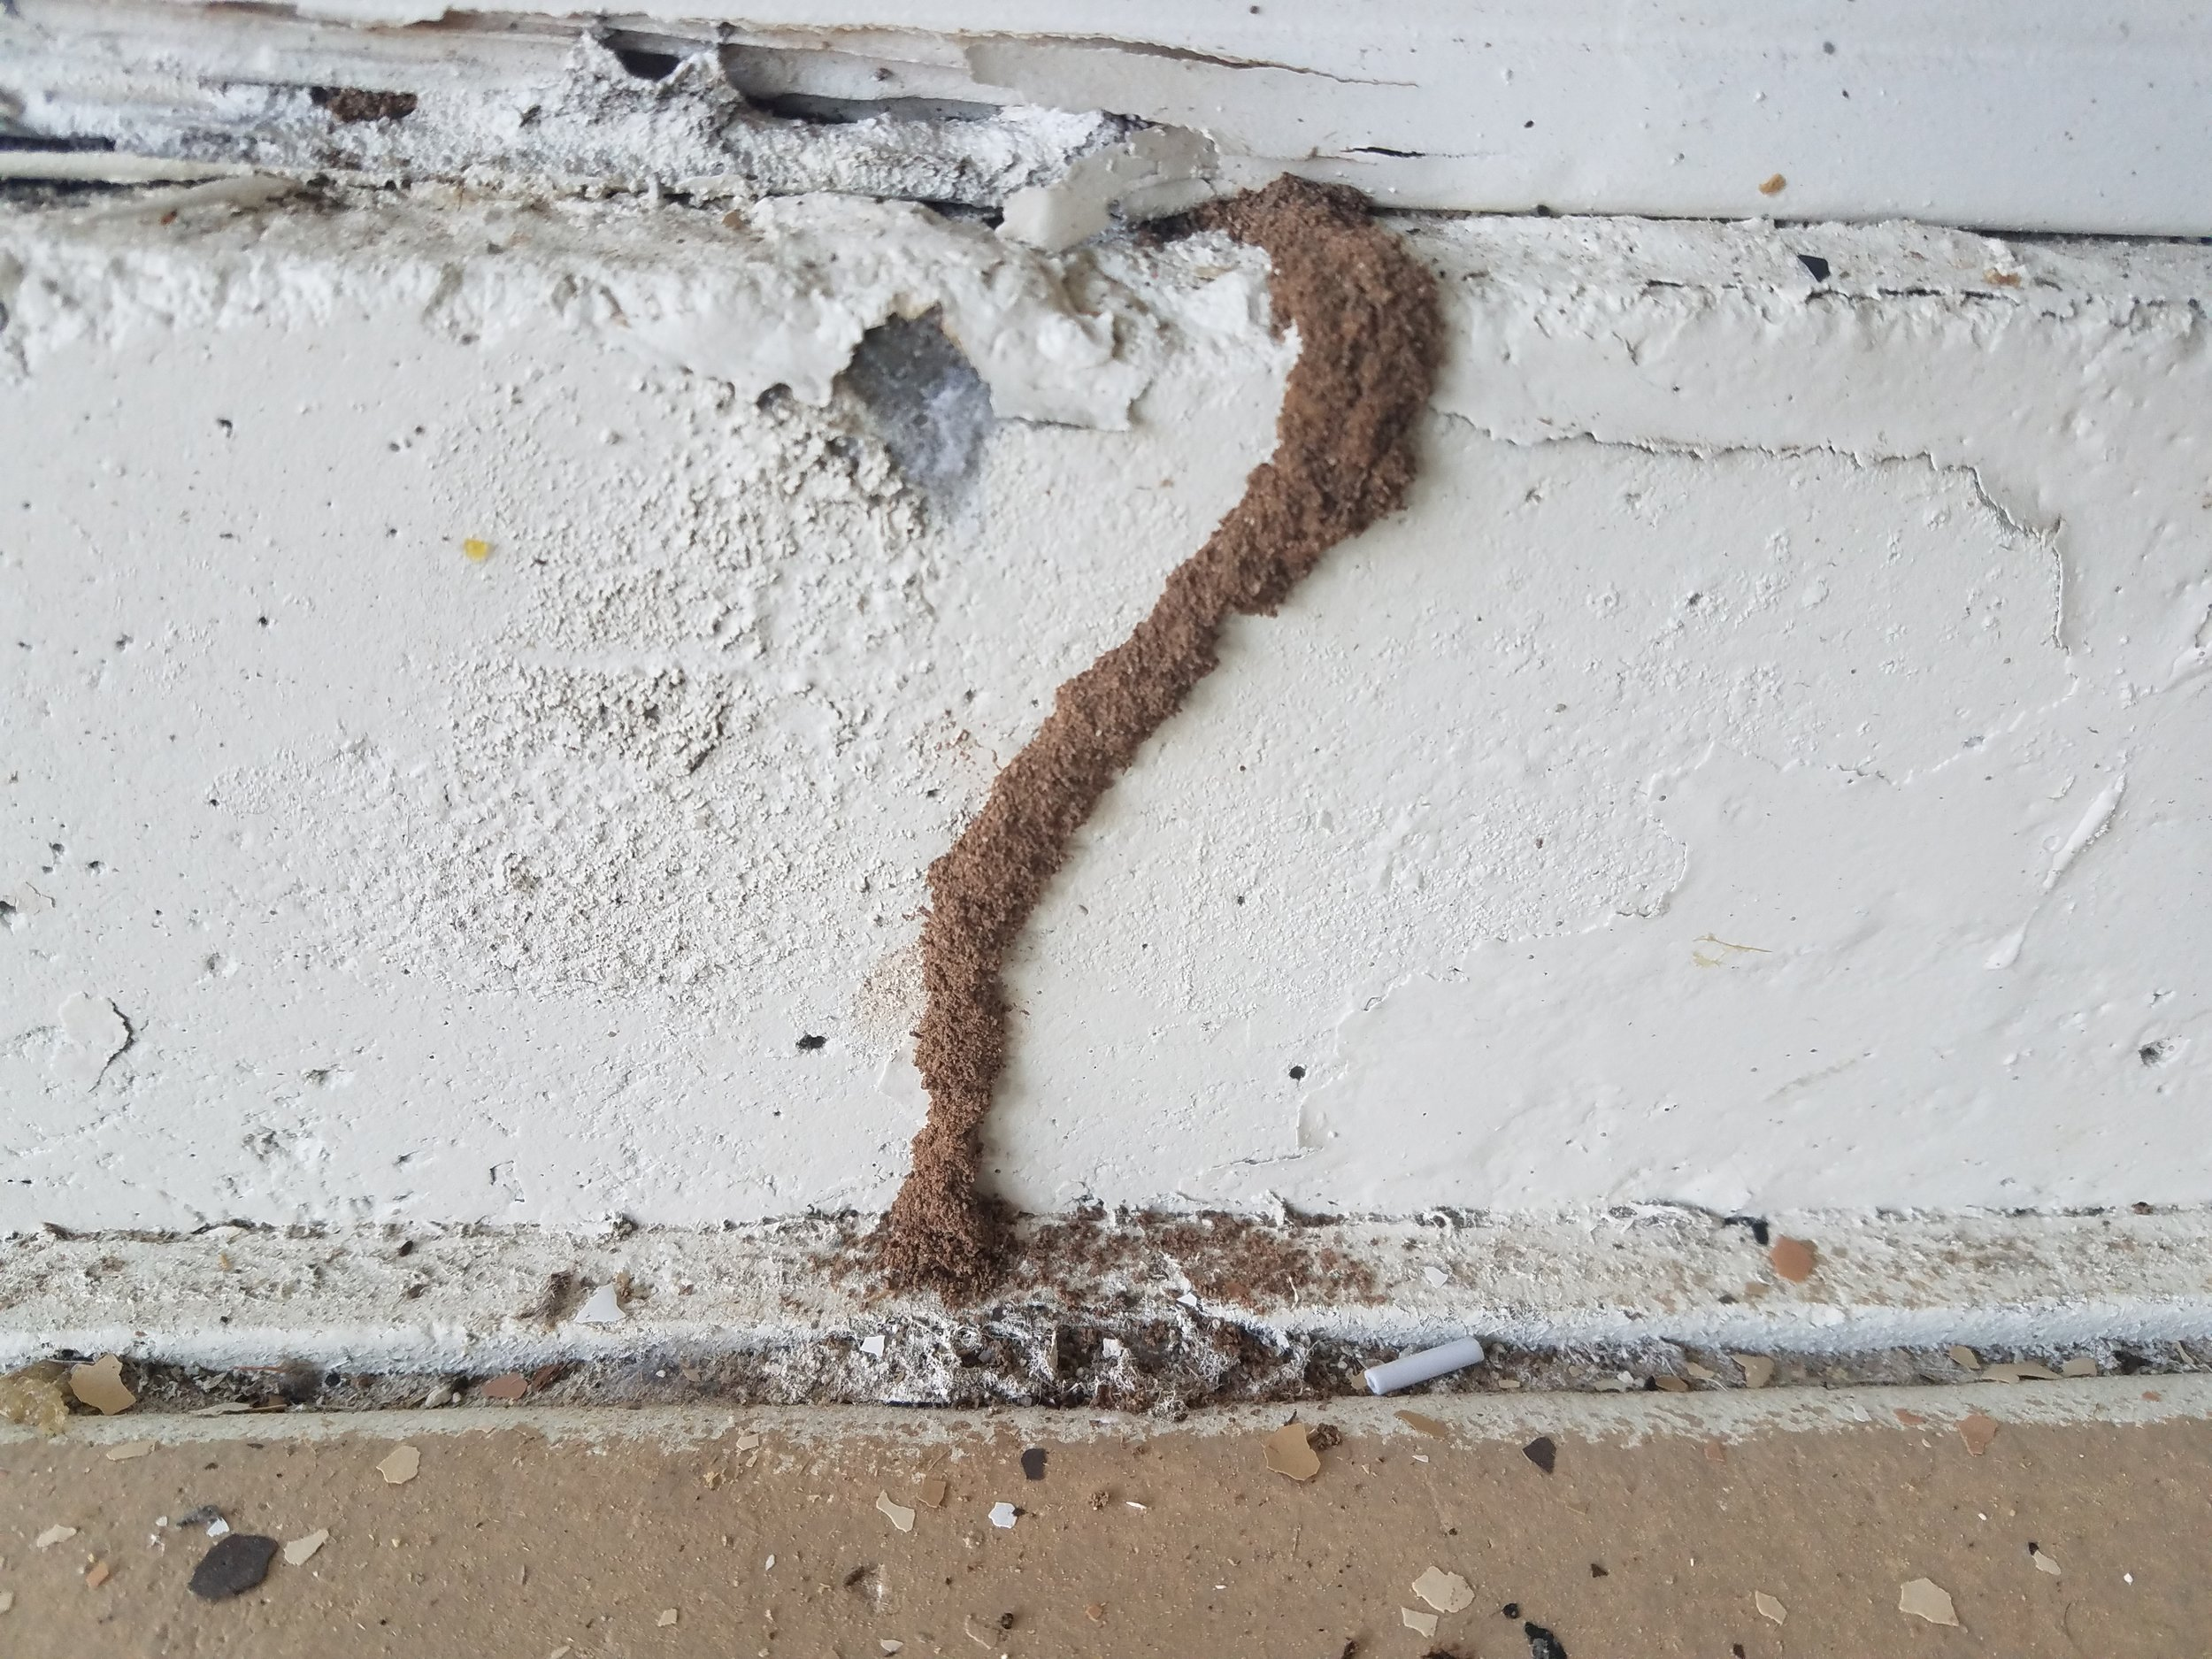 Termites thrive here in Arizona. A home owner might find evidence of them in the garage, at foundations, door frames, in the attic or ceilings. Just because you don't see termites, doesn't mean they're not in your home.